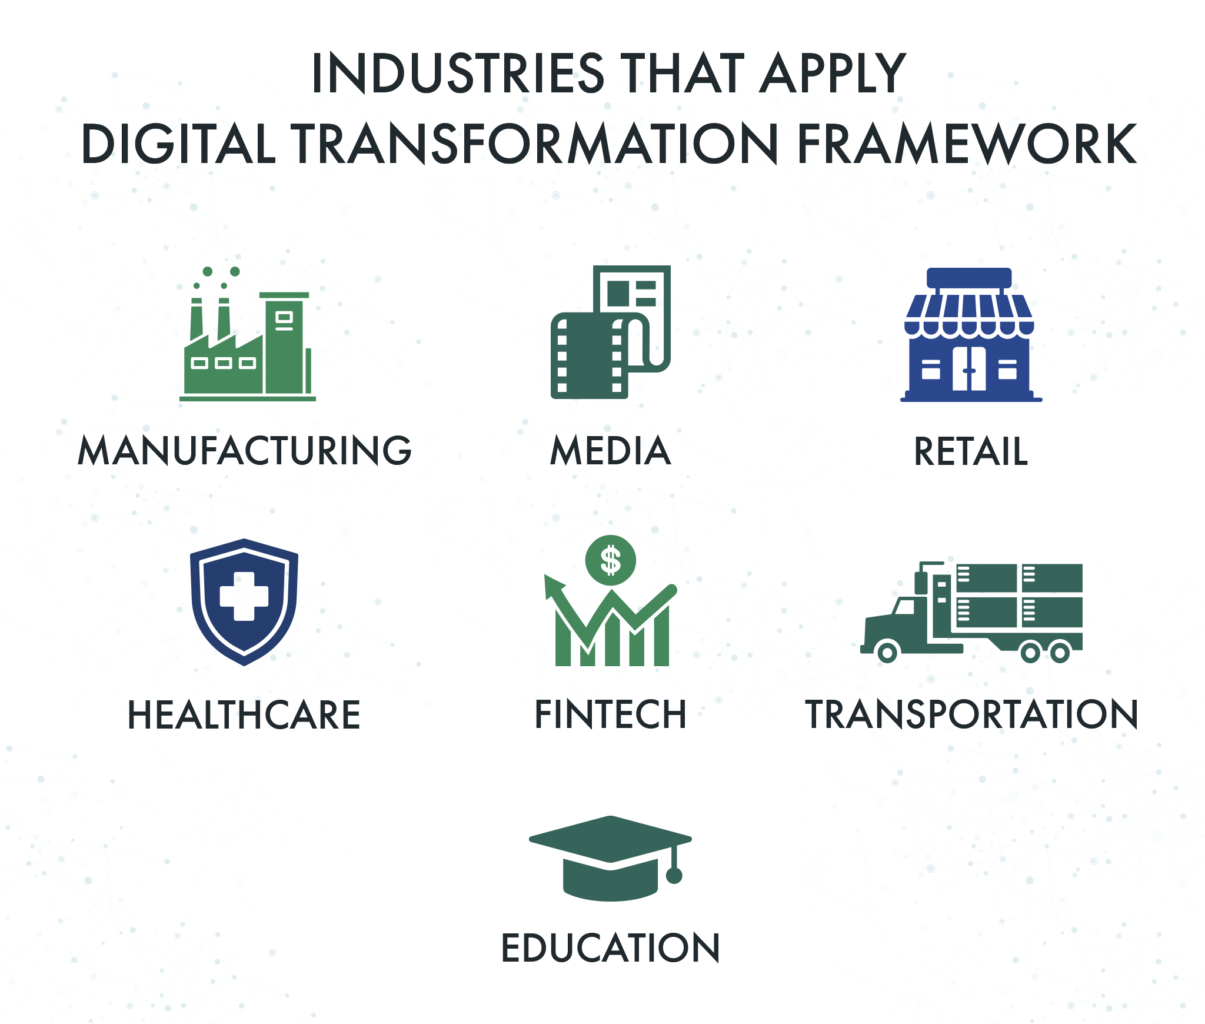 industries that apply a digital transforation framework